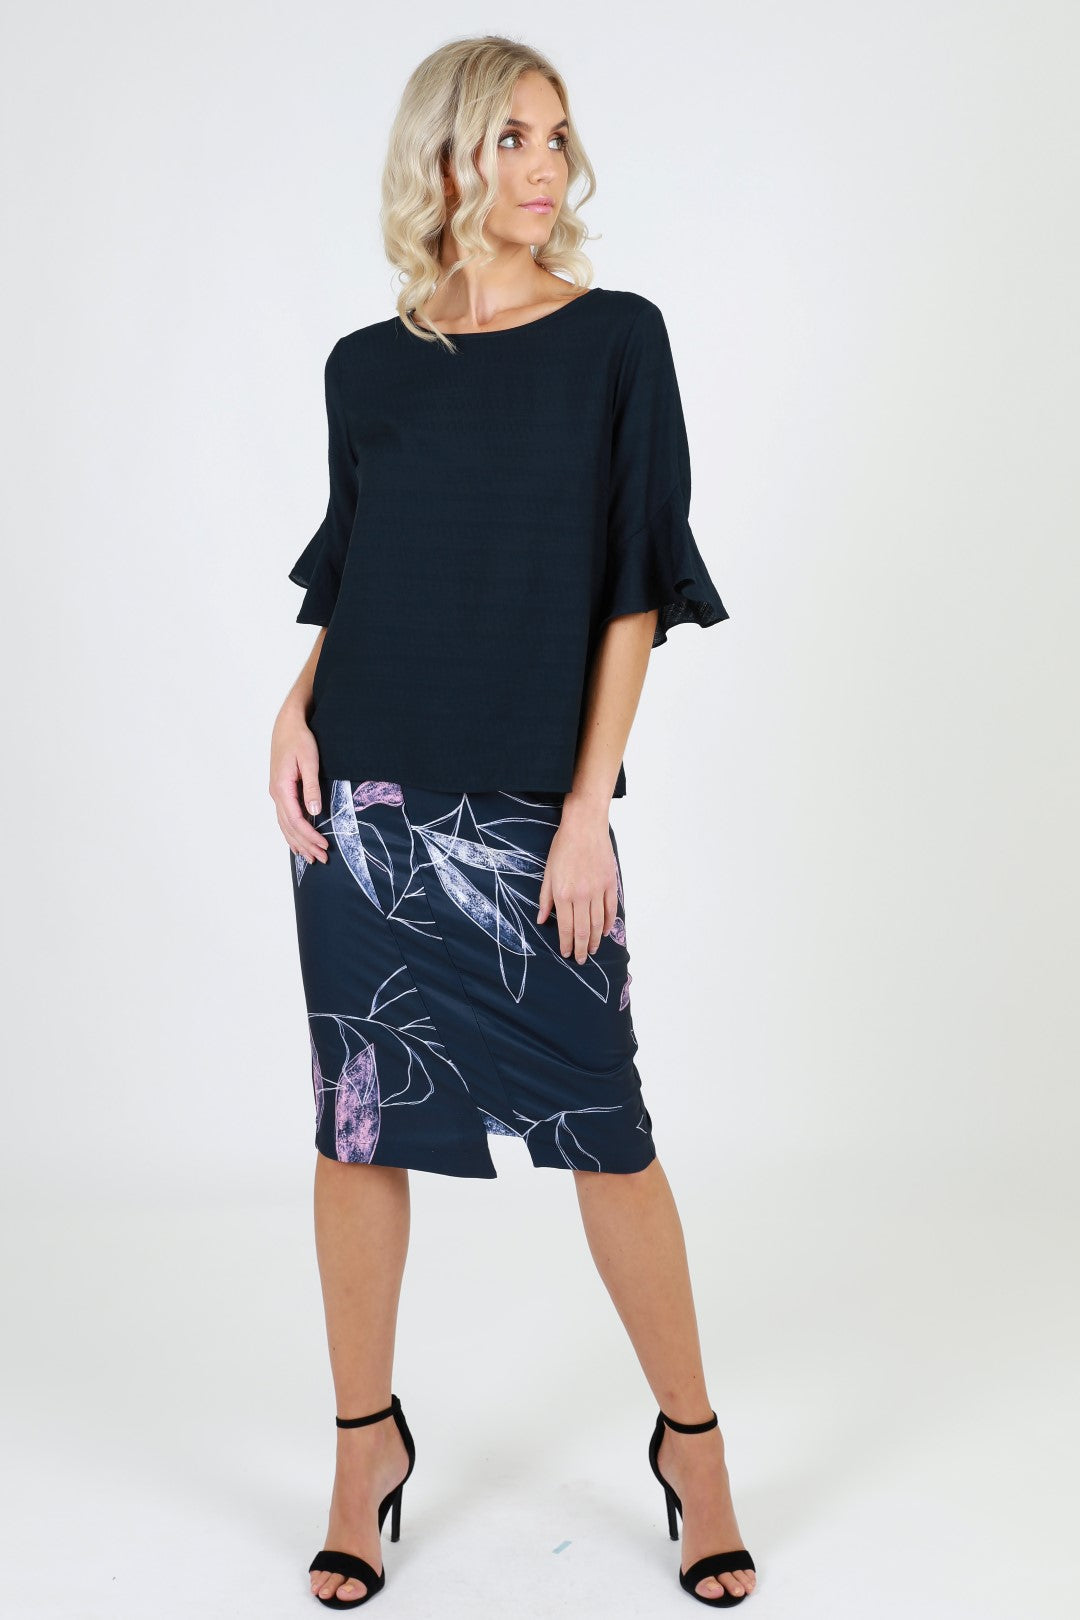 Violet pencil shape skirt from 3rd Love